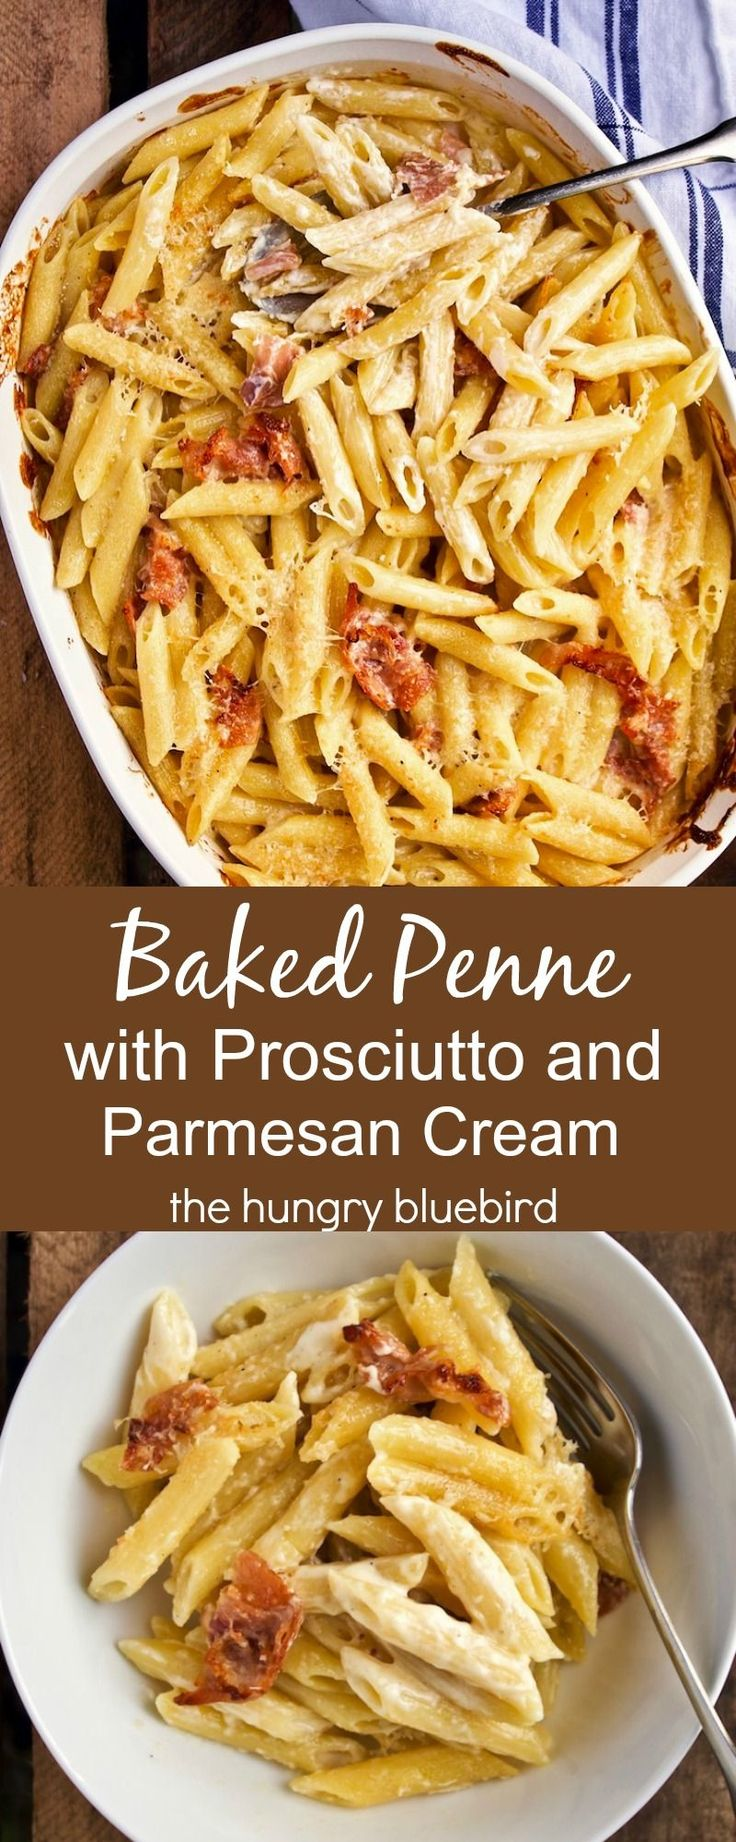 Baked Penne with Prosciutto, Parmesan & Cream